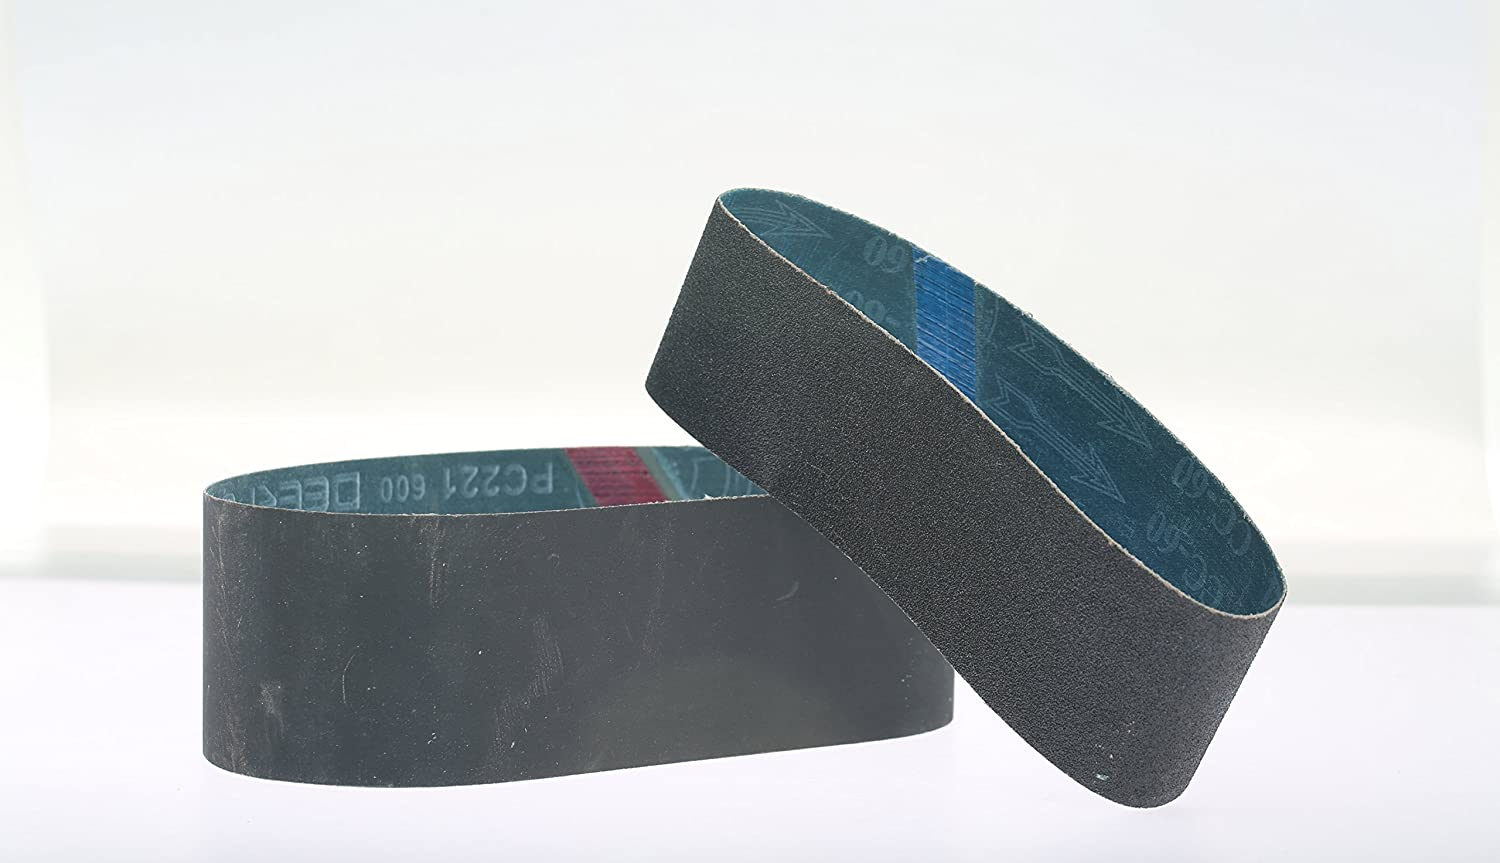 6 X 2 1//2 X 18 15//16 60 Grit Silicon Carbide Lapidary Grinding Belt for 6 Expandable Rubber Drum 3